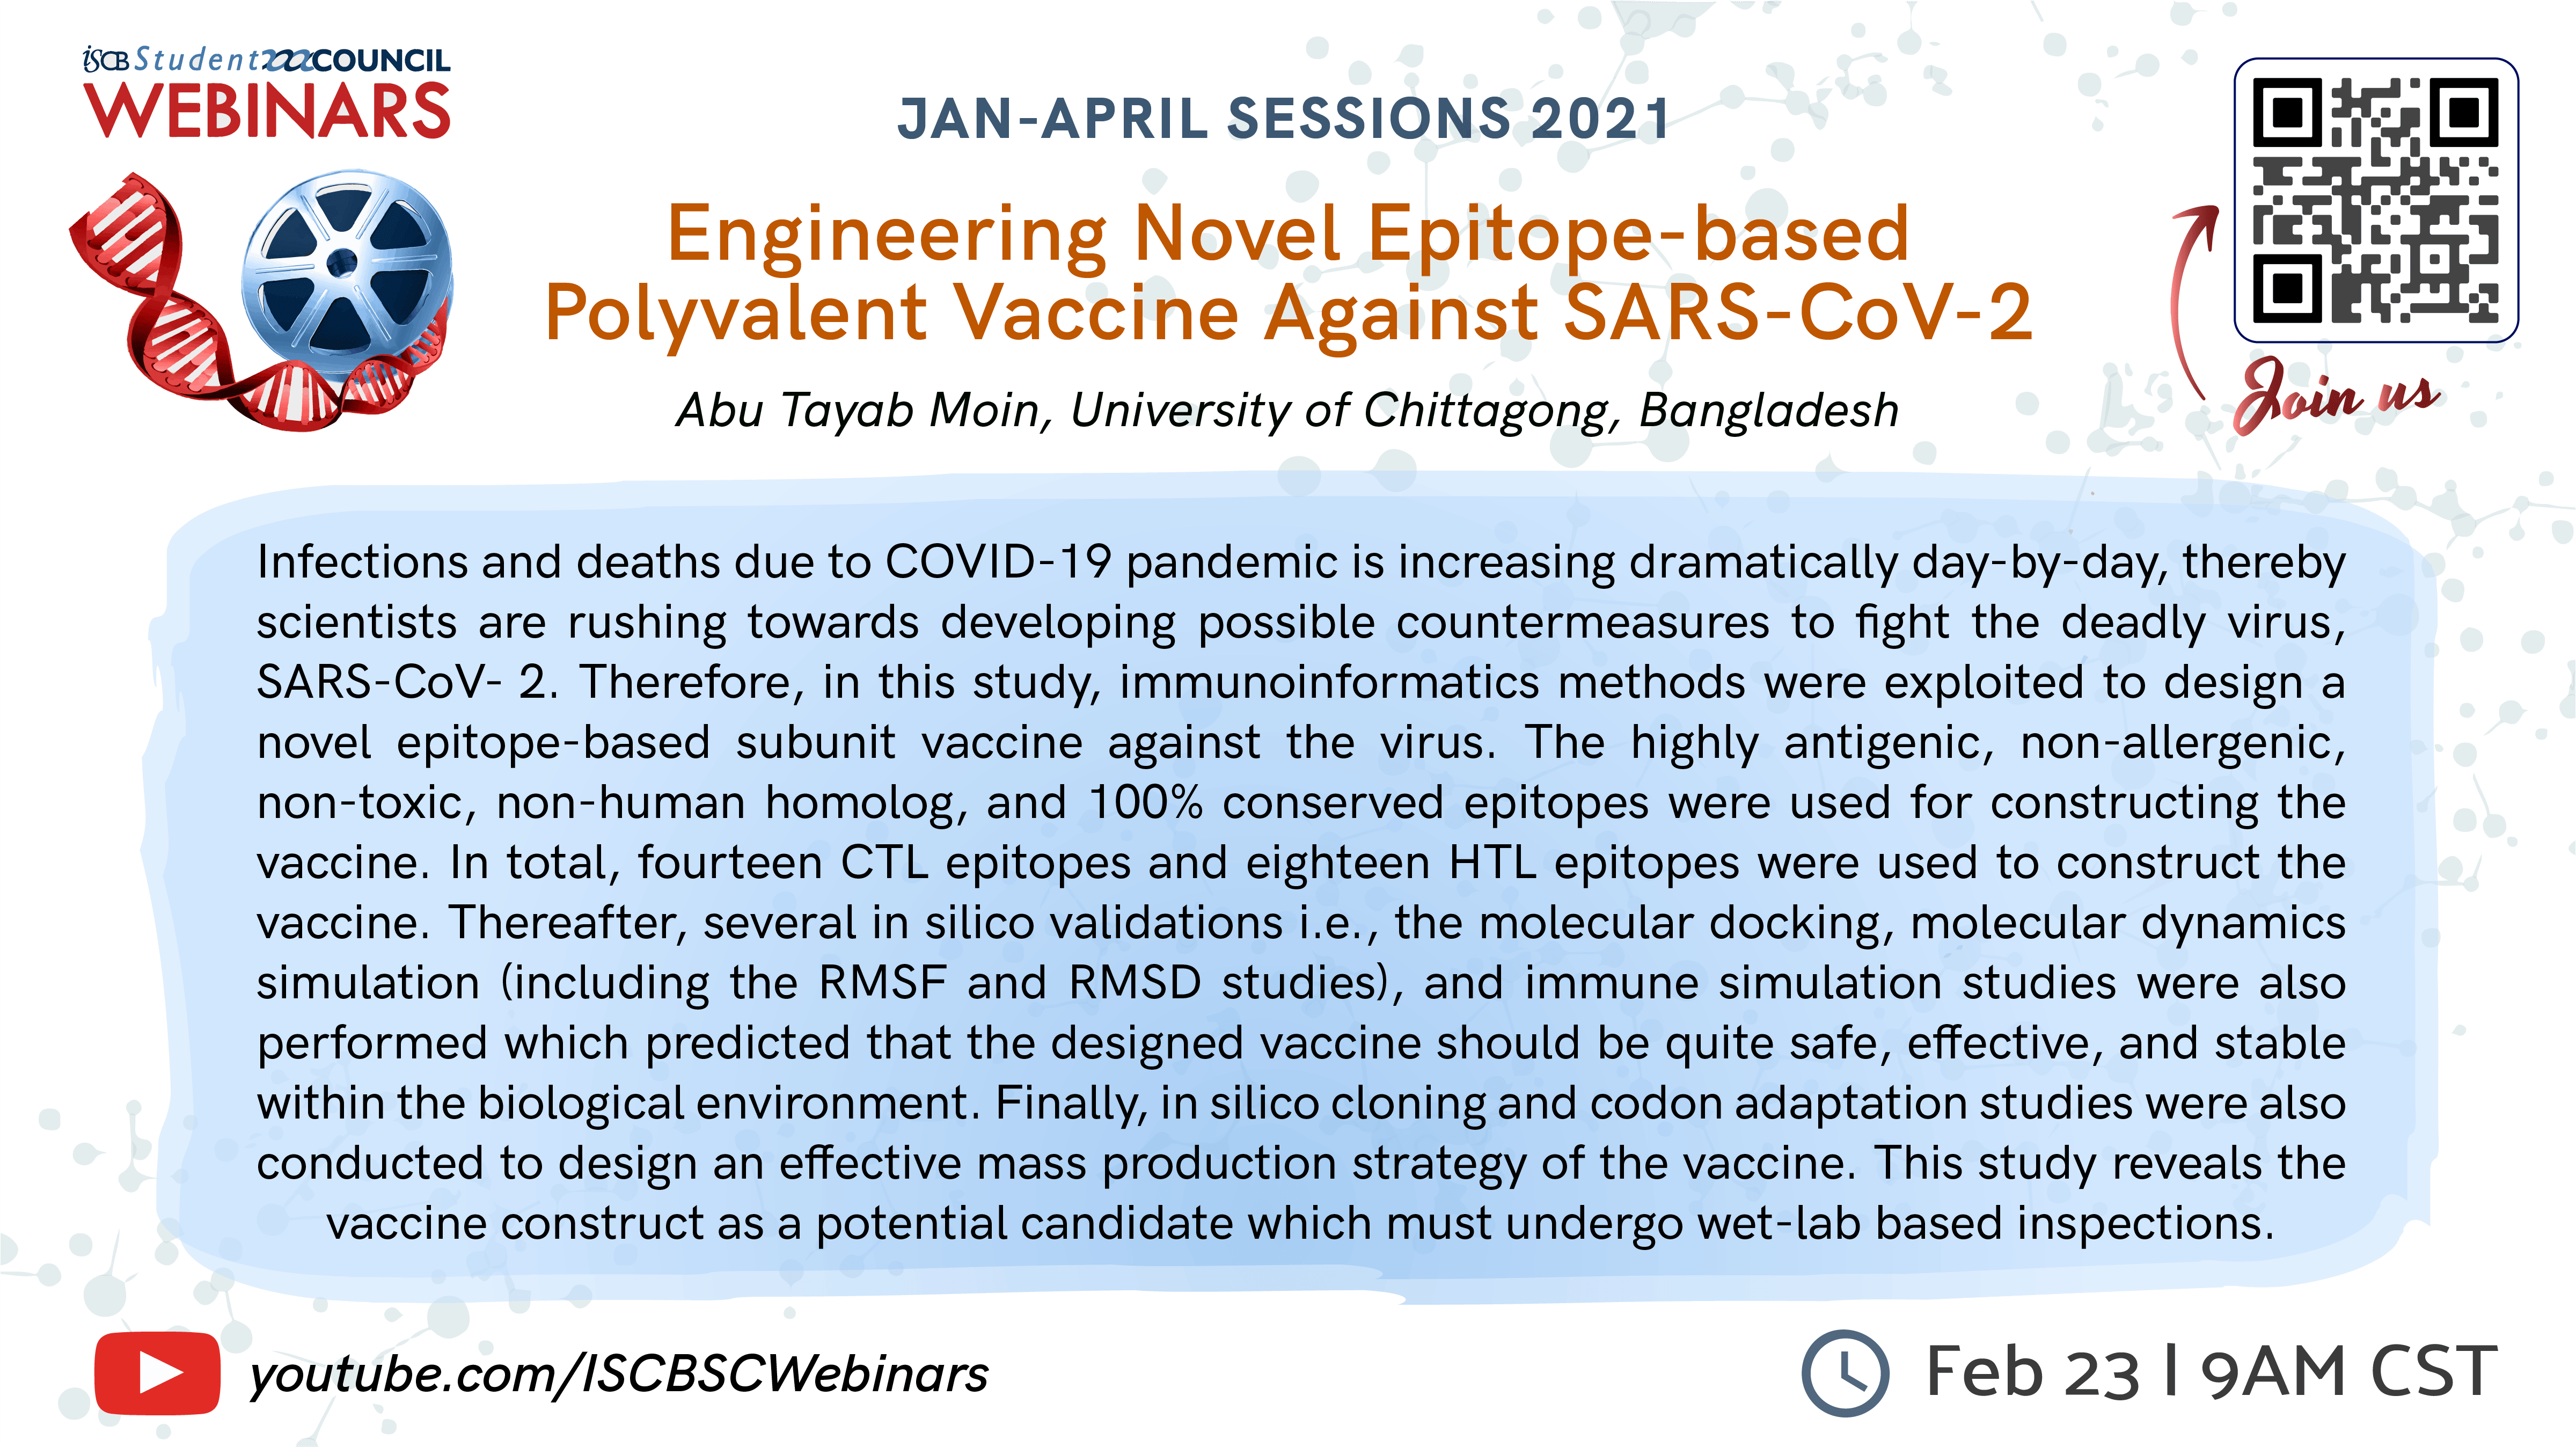 Abu Tayab Moin: Engineering Novel Epitope-based Polyvalent Vaccine Against SARS-CoV-2